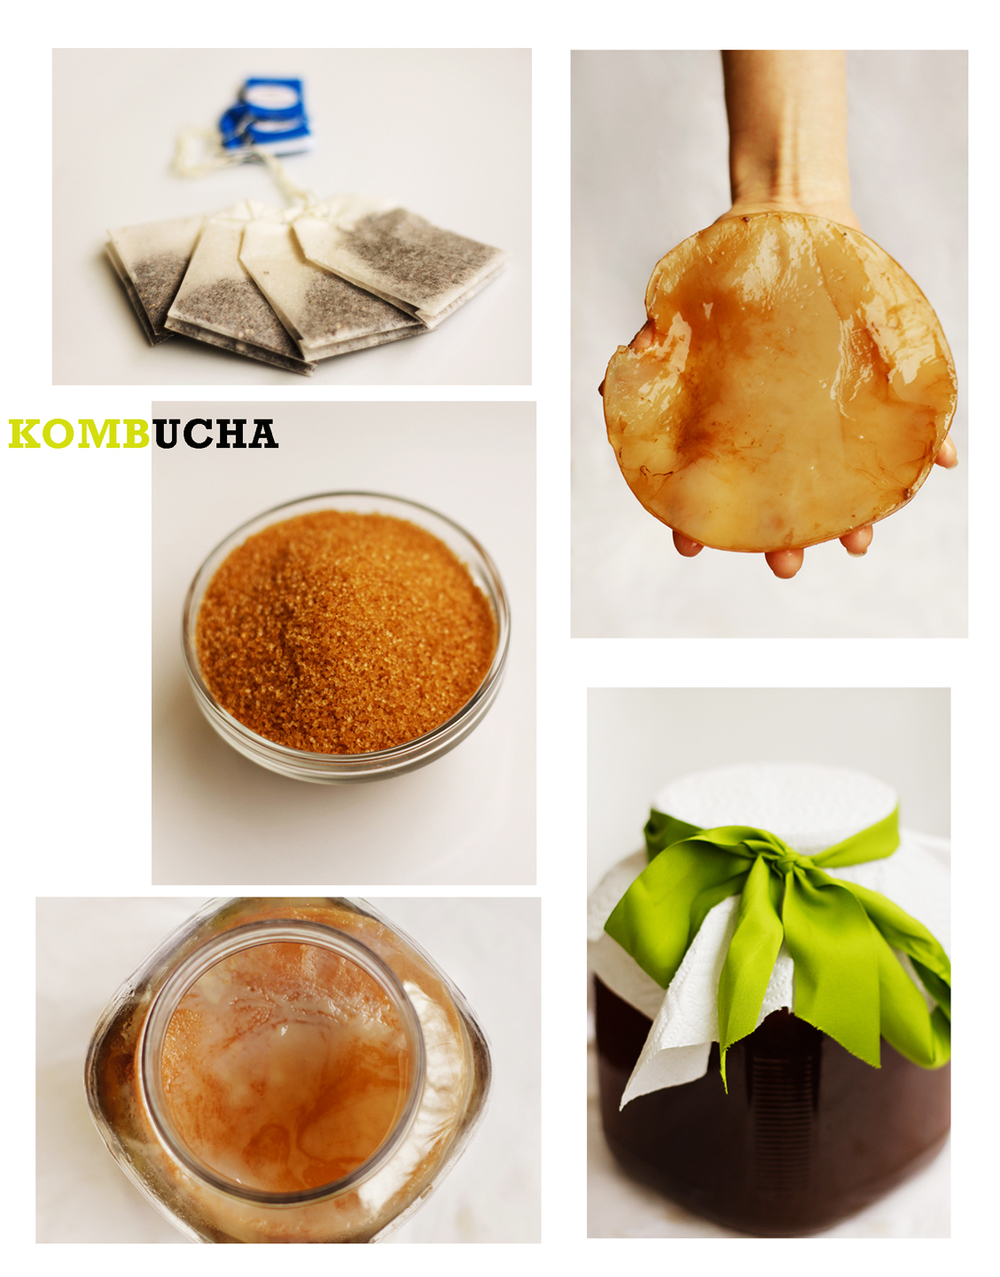 HOW-TO MAKE KOMBUCHA